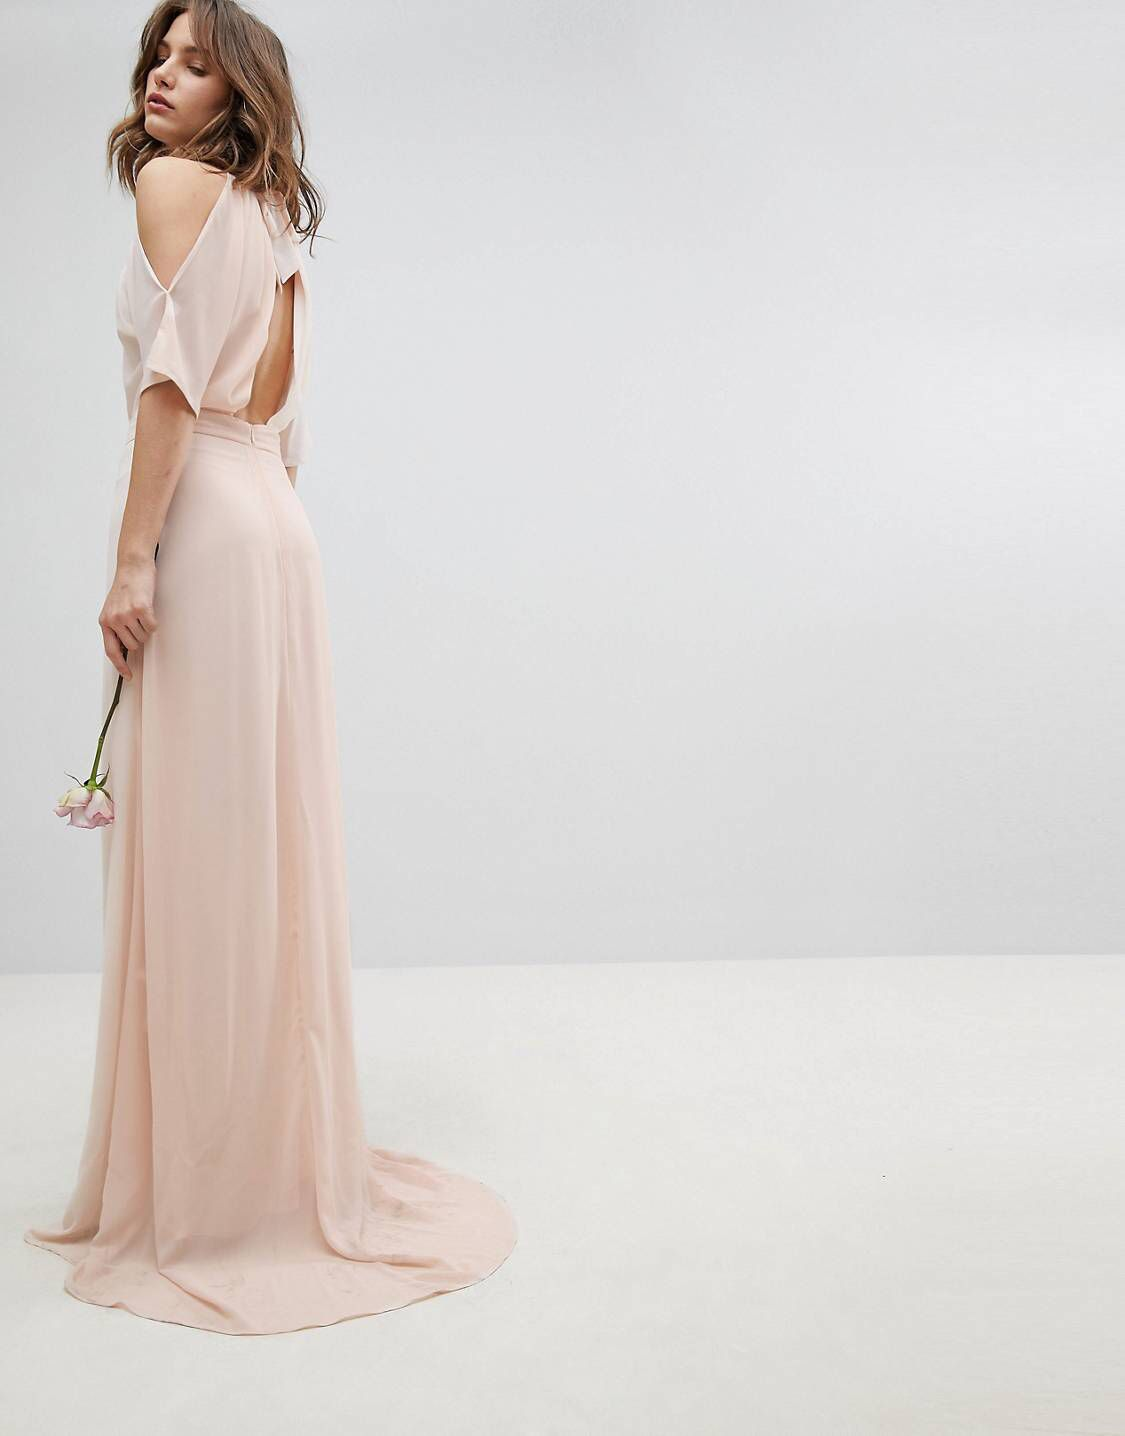 a226313254bfd High Neck Maxi Bridesmaid Dress With Fishtail – DACC